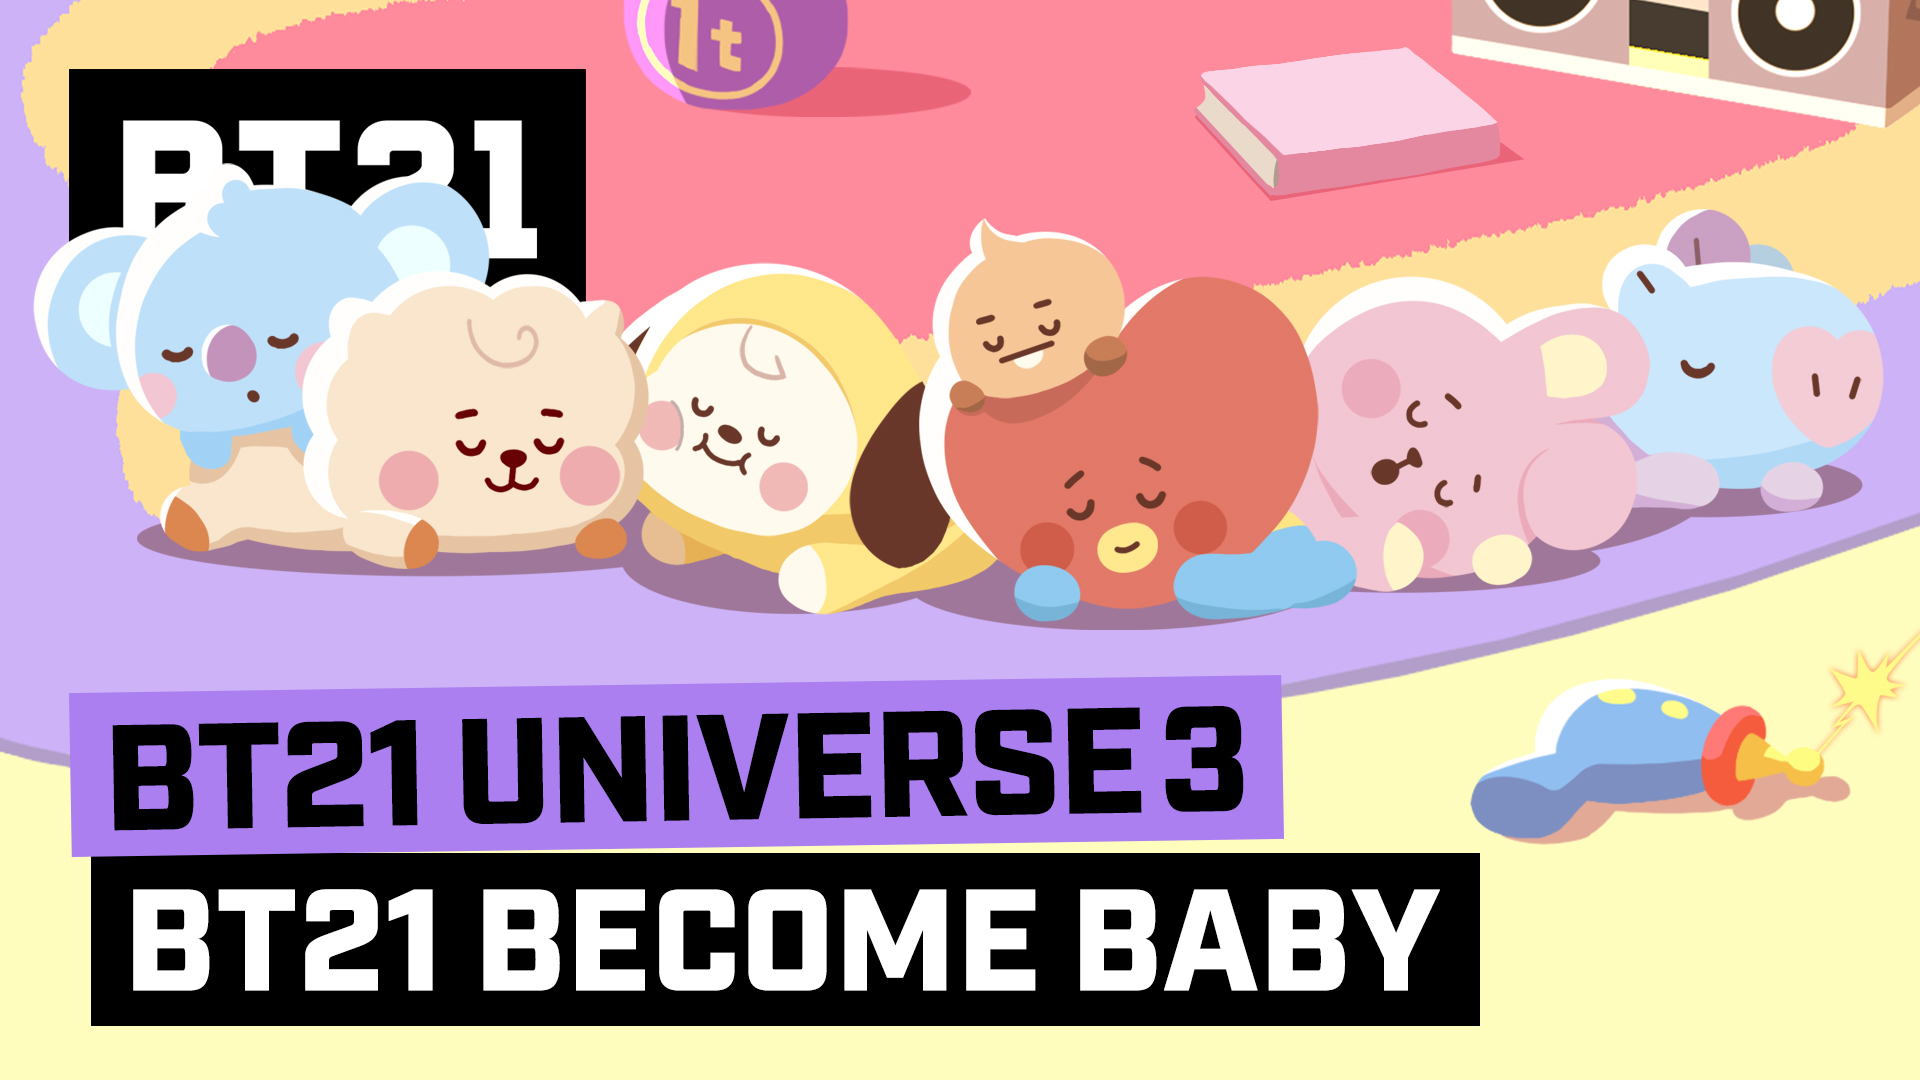 BT21 UNIVERSE 3 ANIMATION EP.08 - BT21 Become BABY